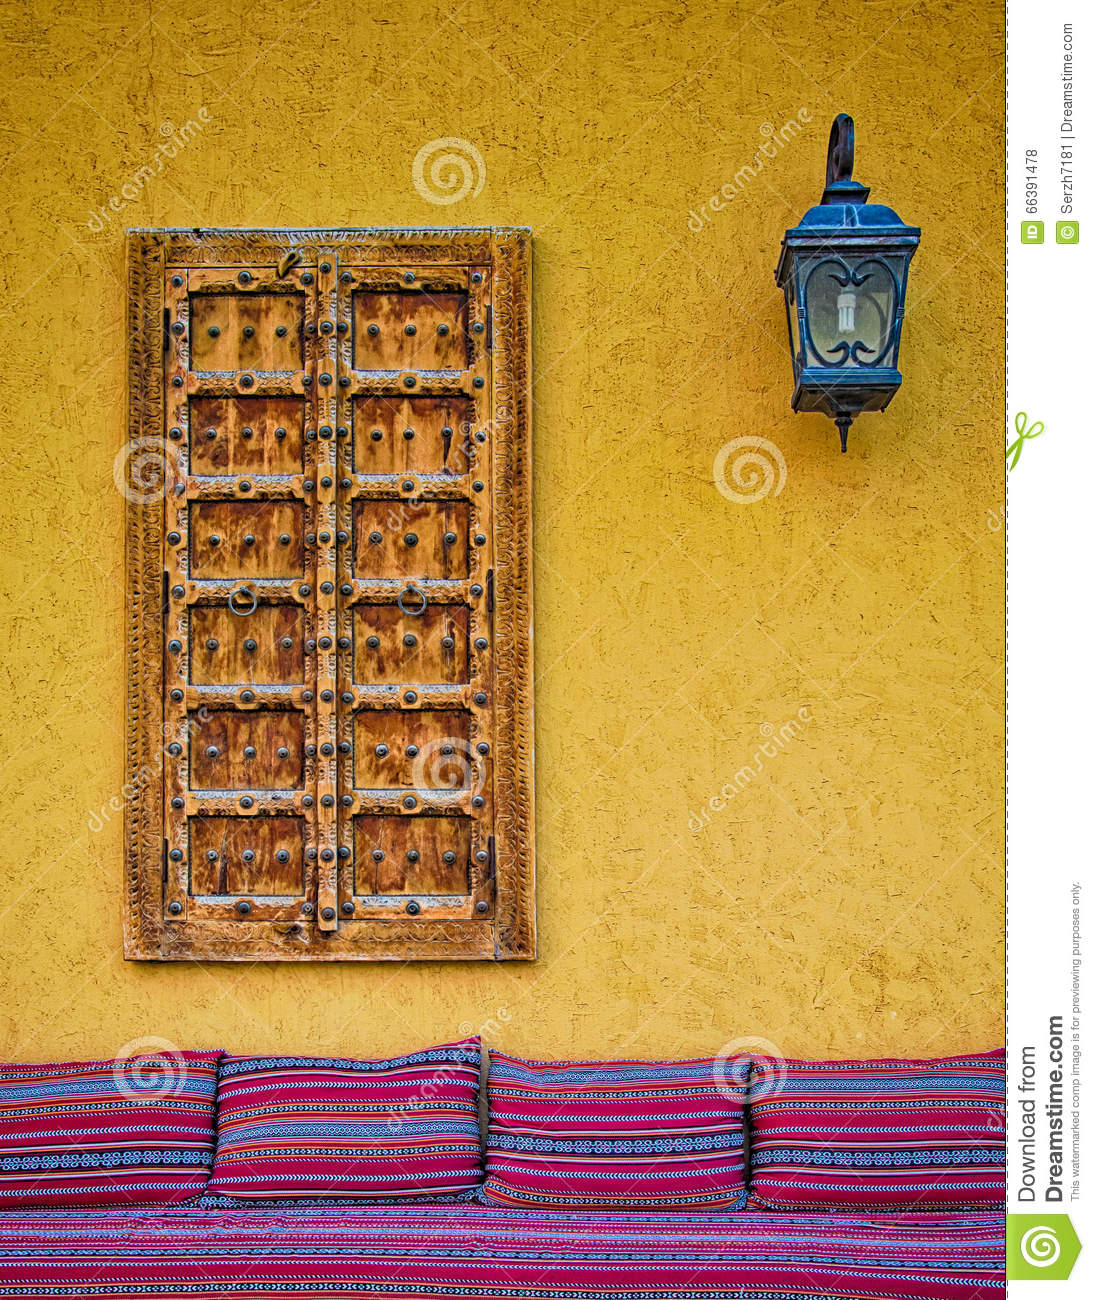 The Wall With Window And Lamp Stock Photo - Image: 66391478